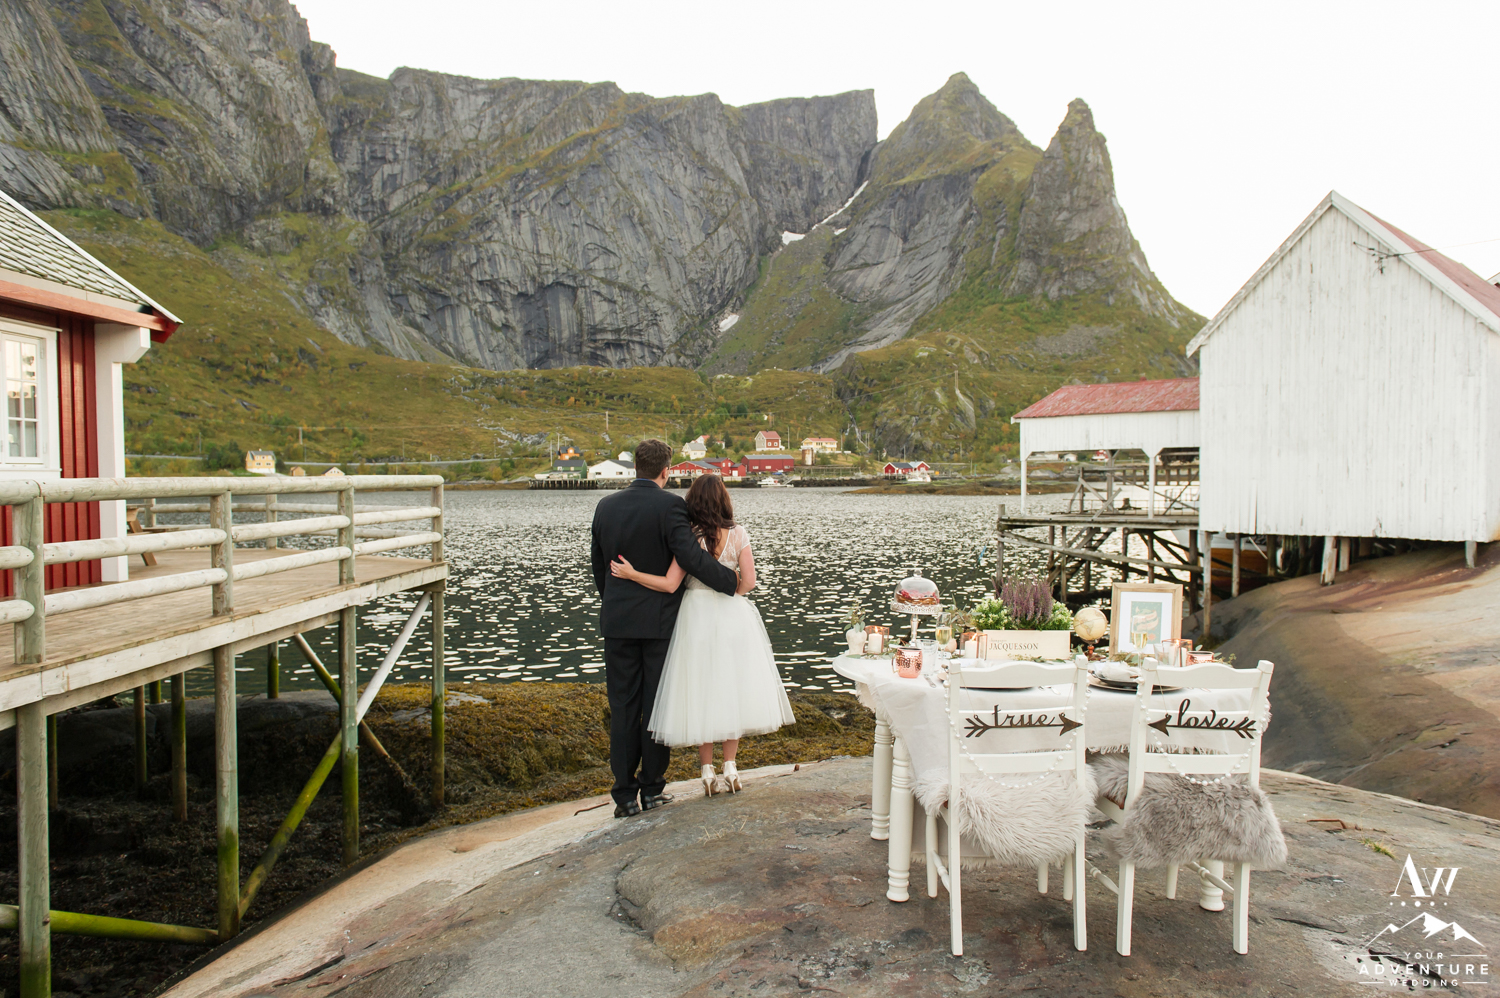 lofoten-islands-wedding-photos-your-adventure-wedding-83